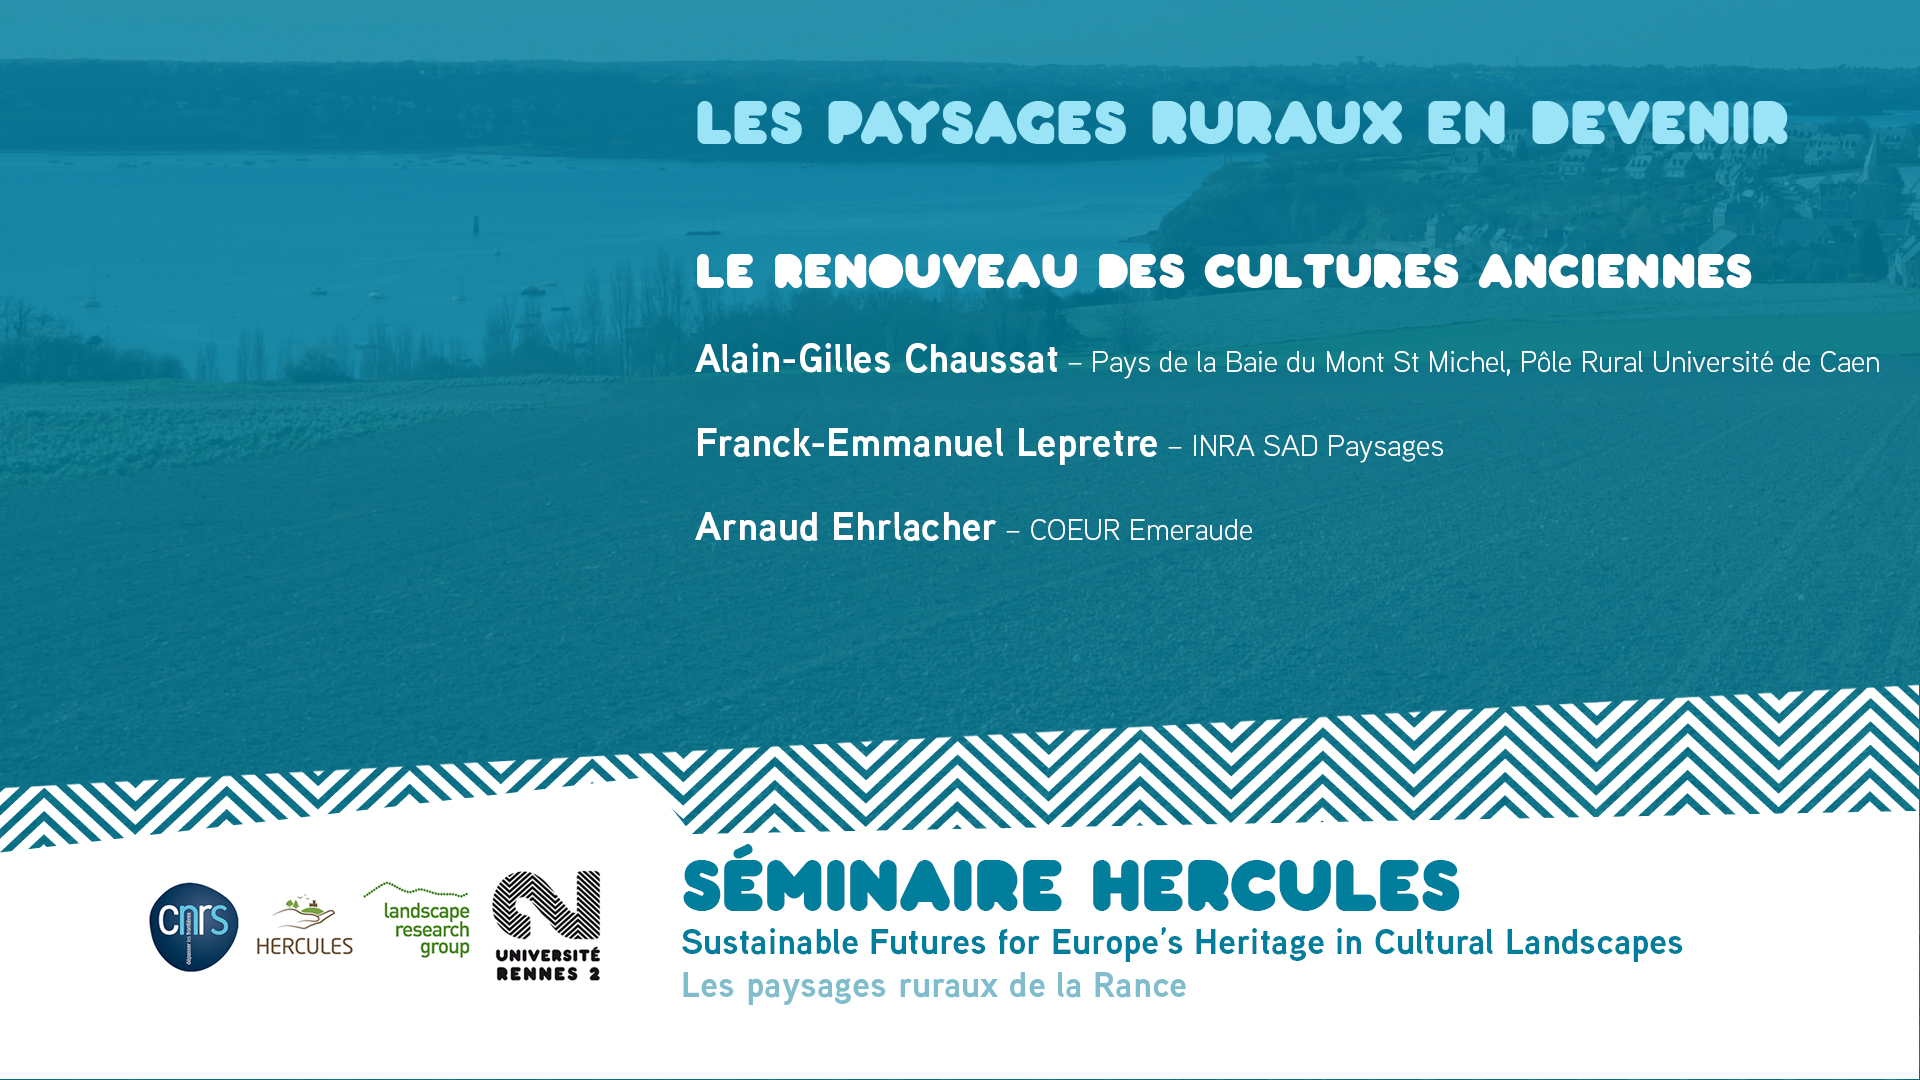 Les paysages ruraux en devenir – Le renouveau des cultures anciennes - Sustainable Futures for Europe's Heritage in Cultural Landscapes |